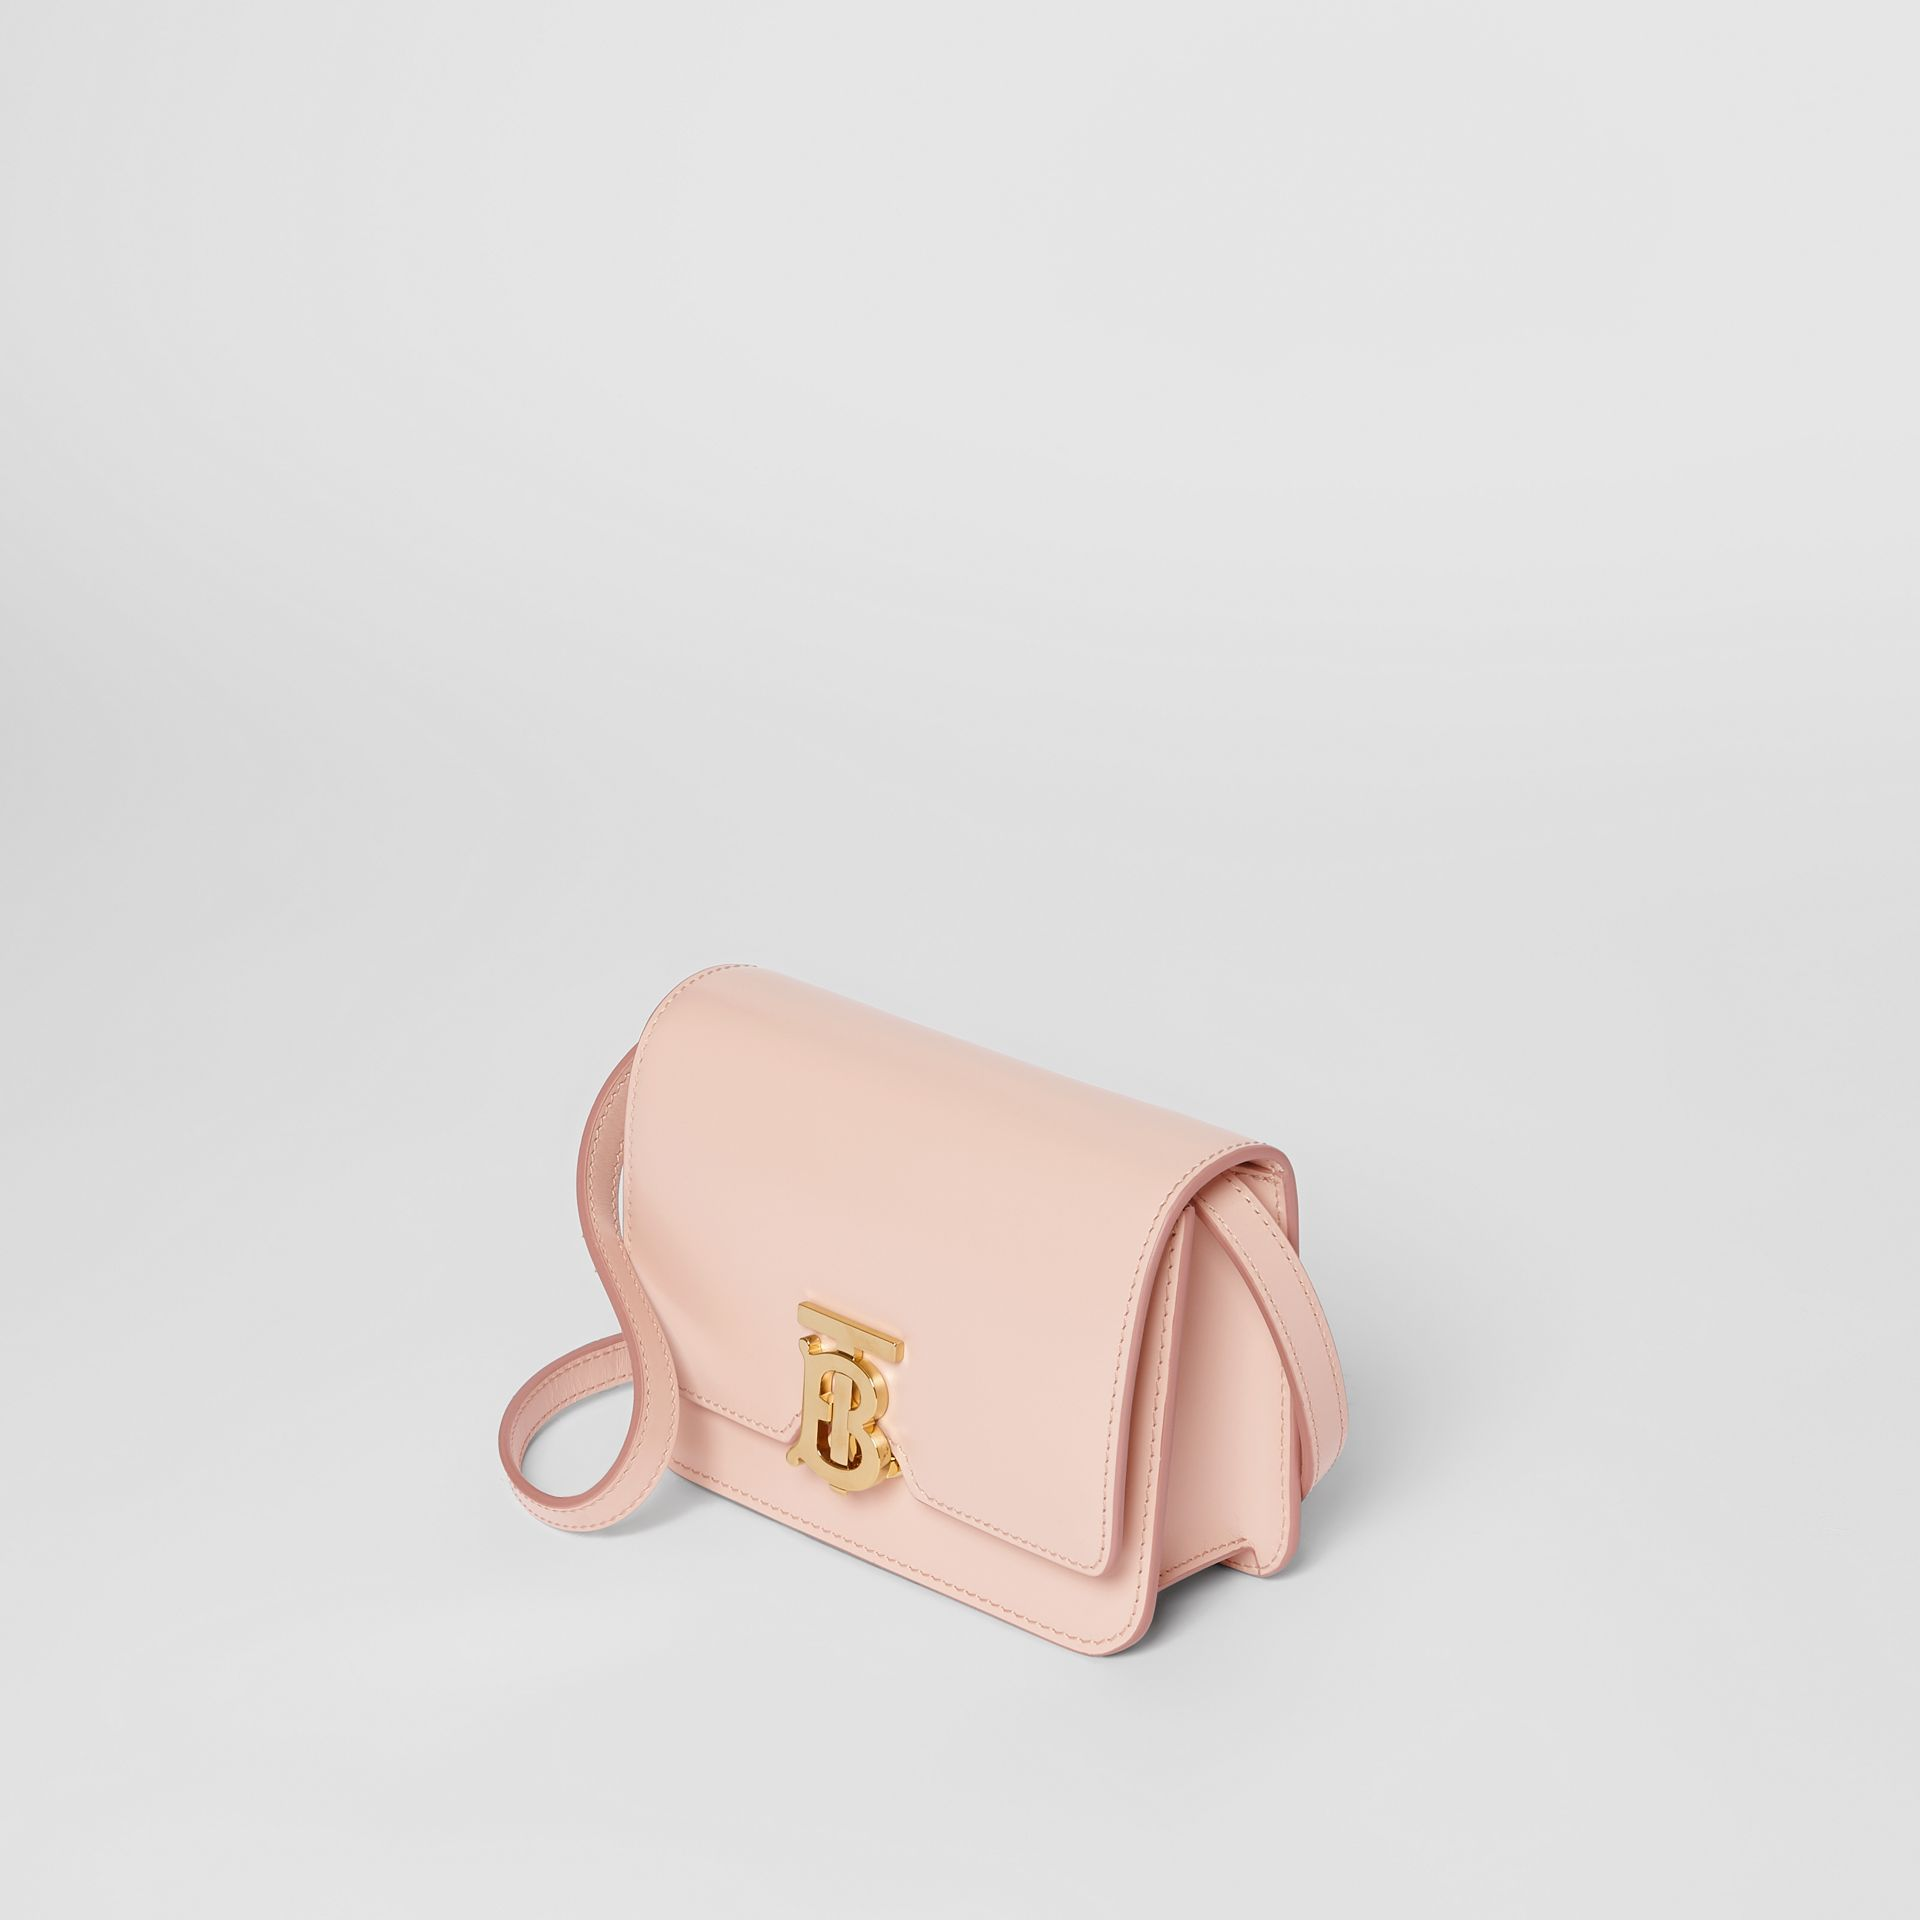 Mini Leather TB Bag in Rose Beige - Women | Burberry - gallery image 3